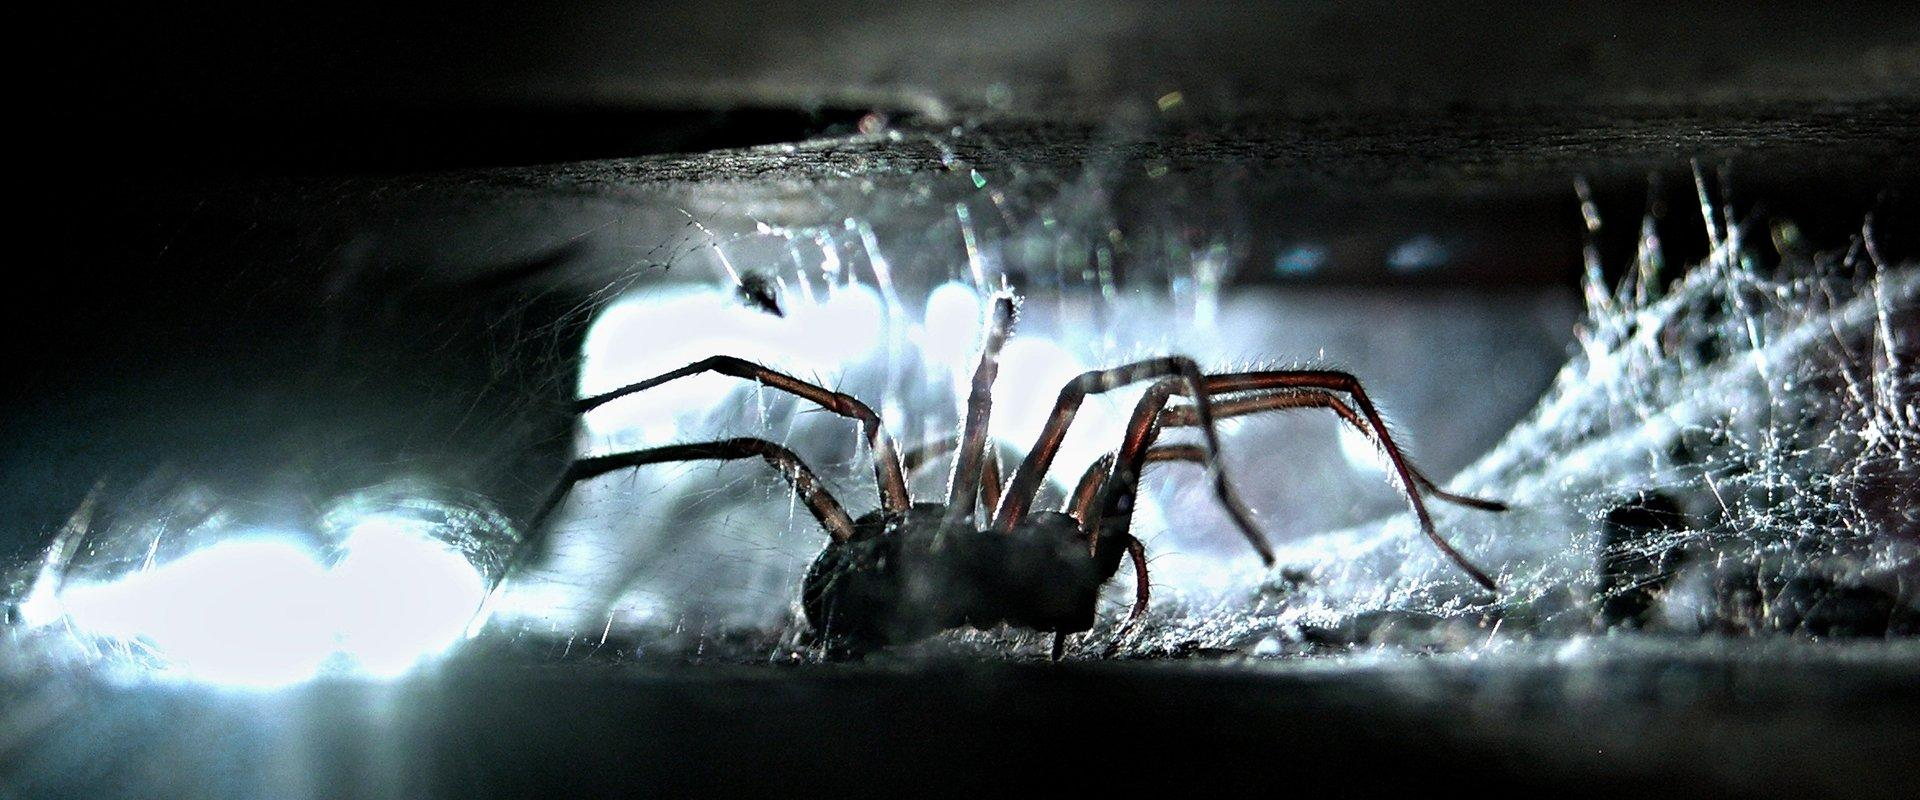 brown recluse spider on paper towel